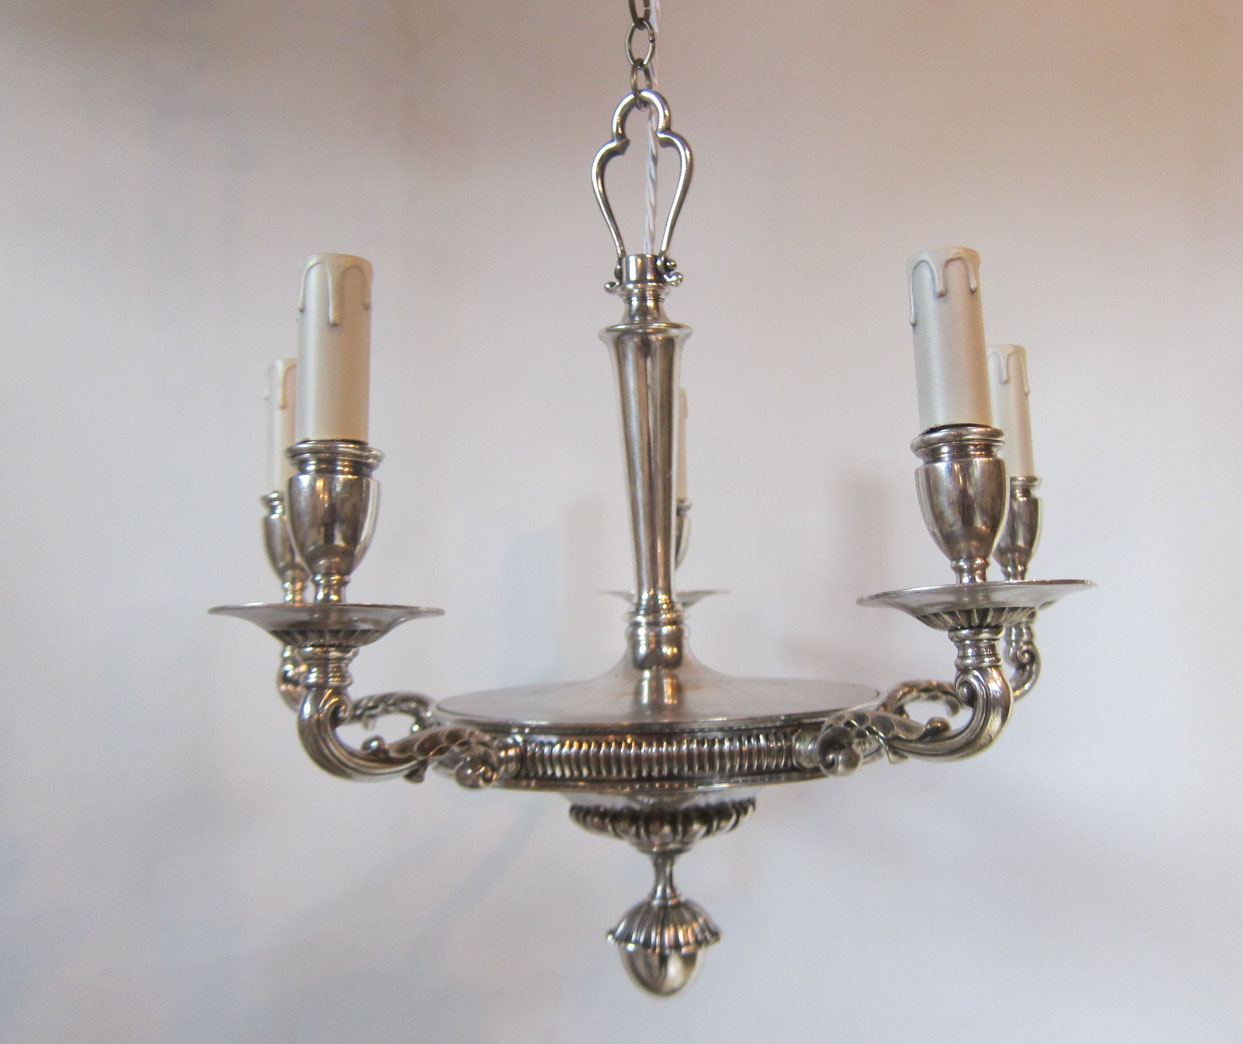 Five Arm Ceiling Light Exeter Antique Lighting Company